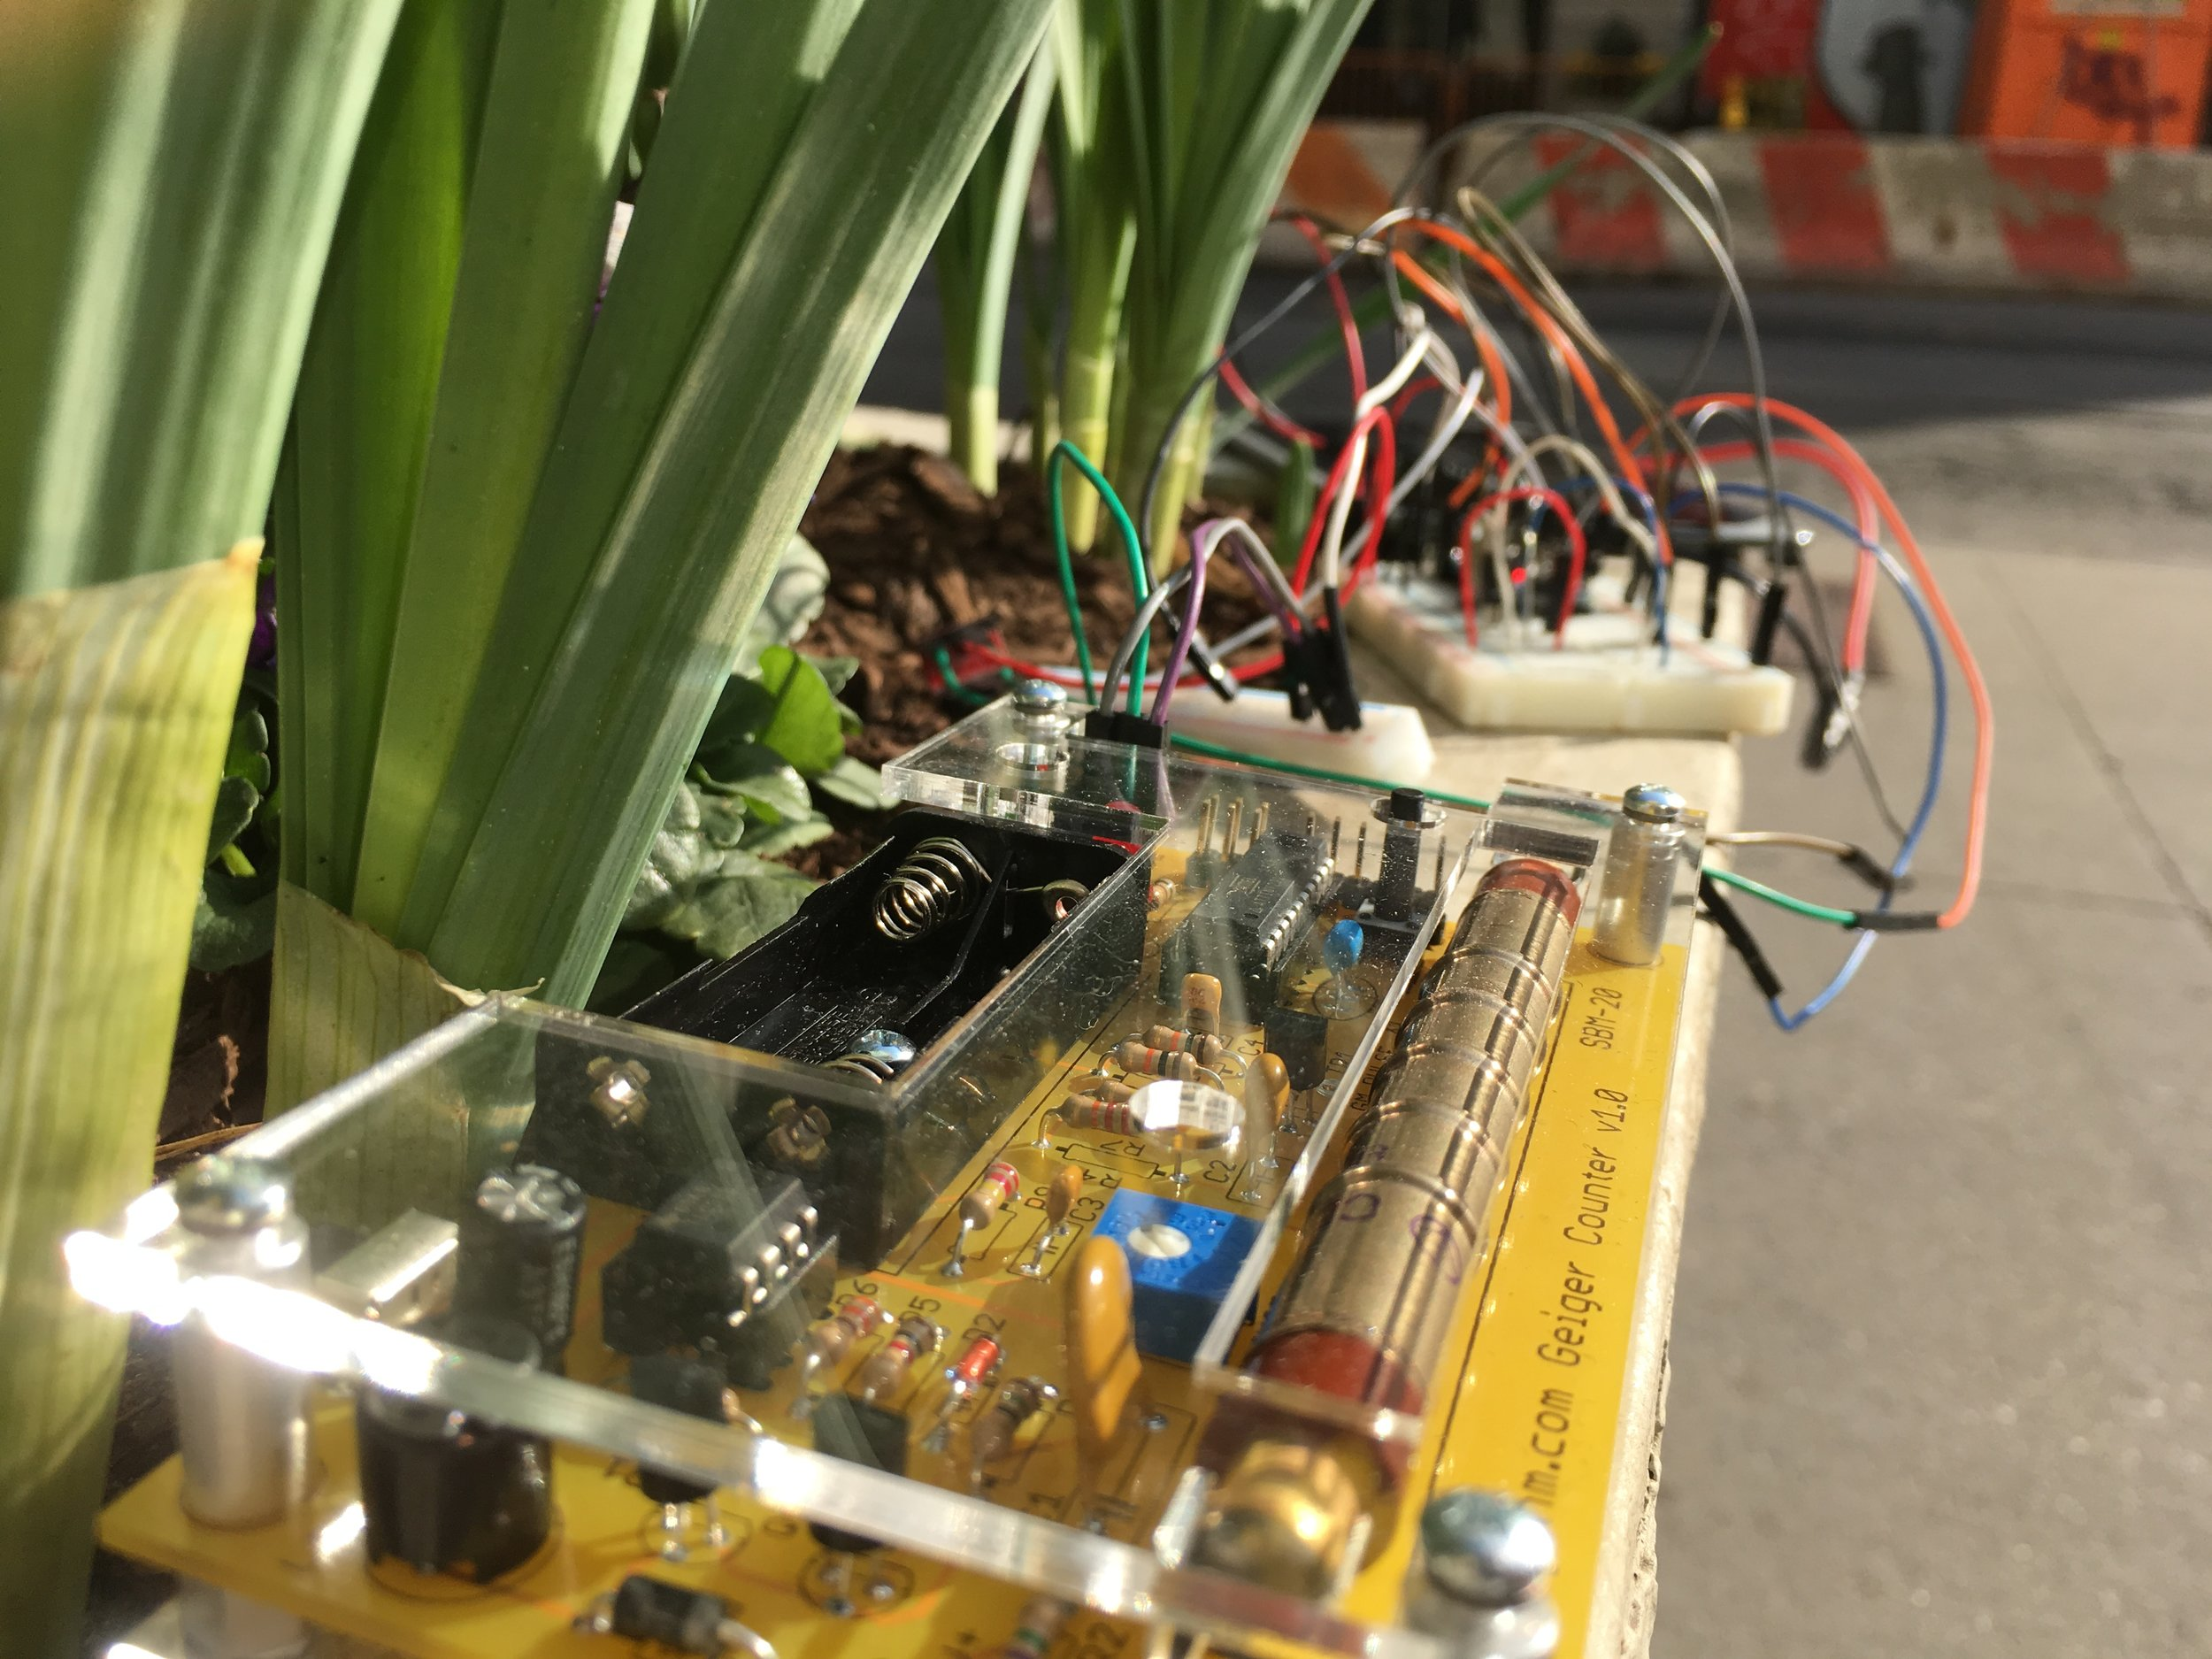 The  mightyohm-geiger kit  assembled and running on solar - a beauty!